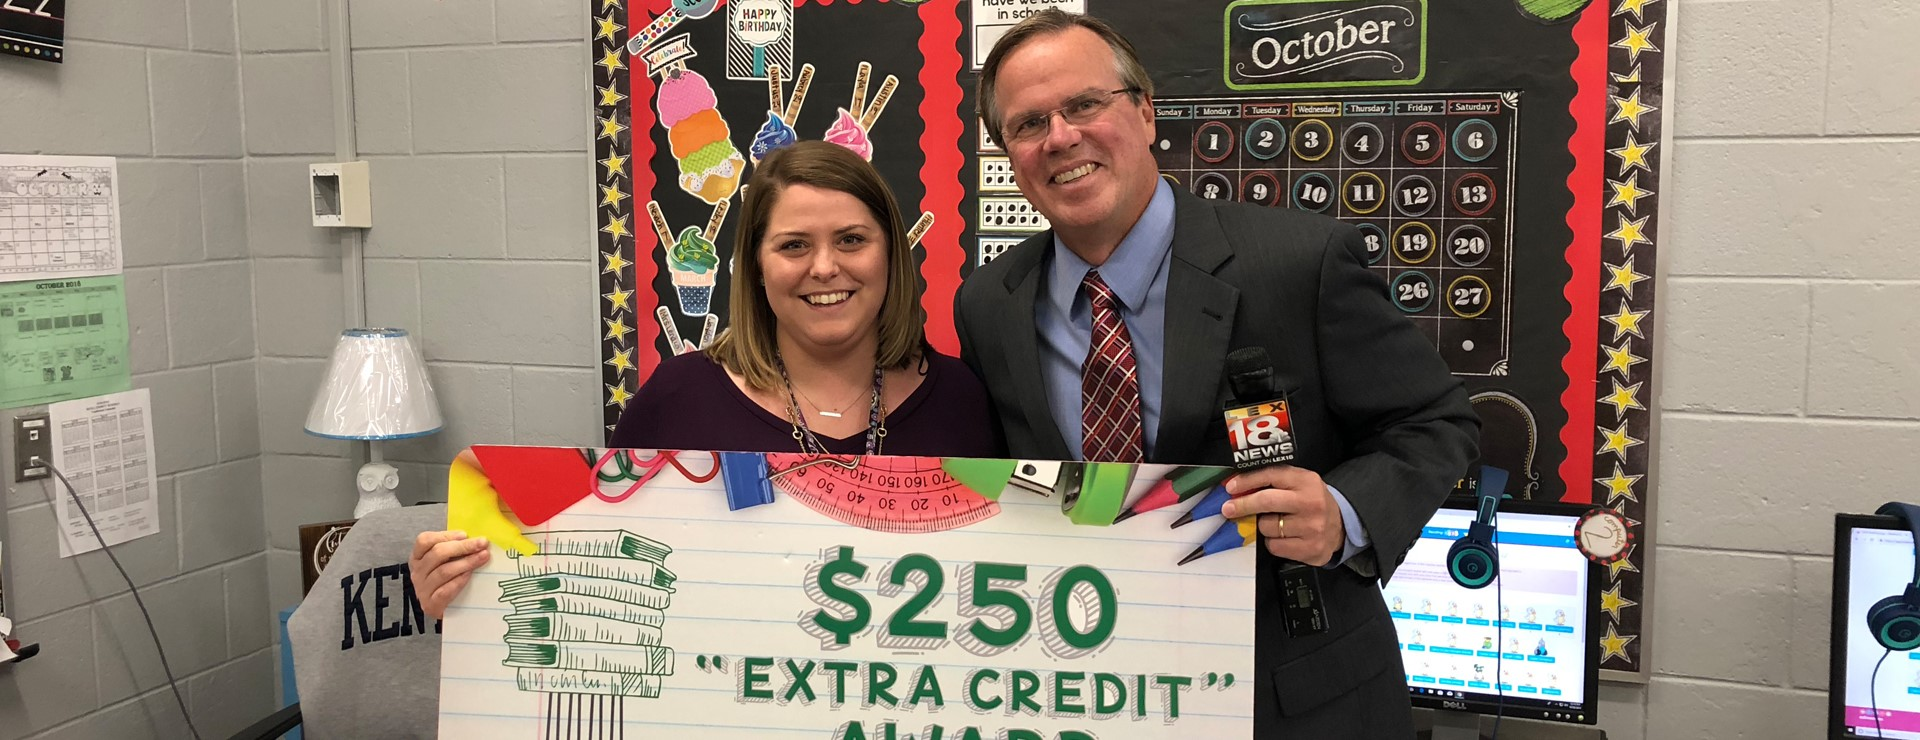 Mrs Worrell, Forcht Bank Extra Credit Award winner!